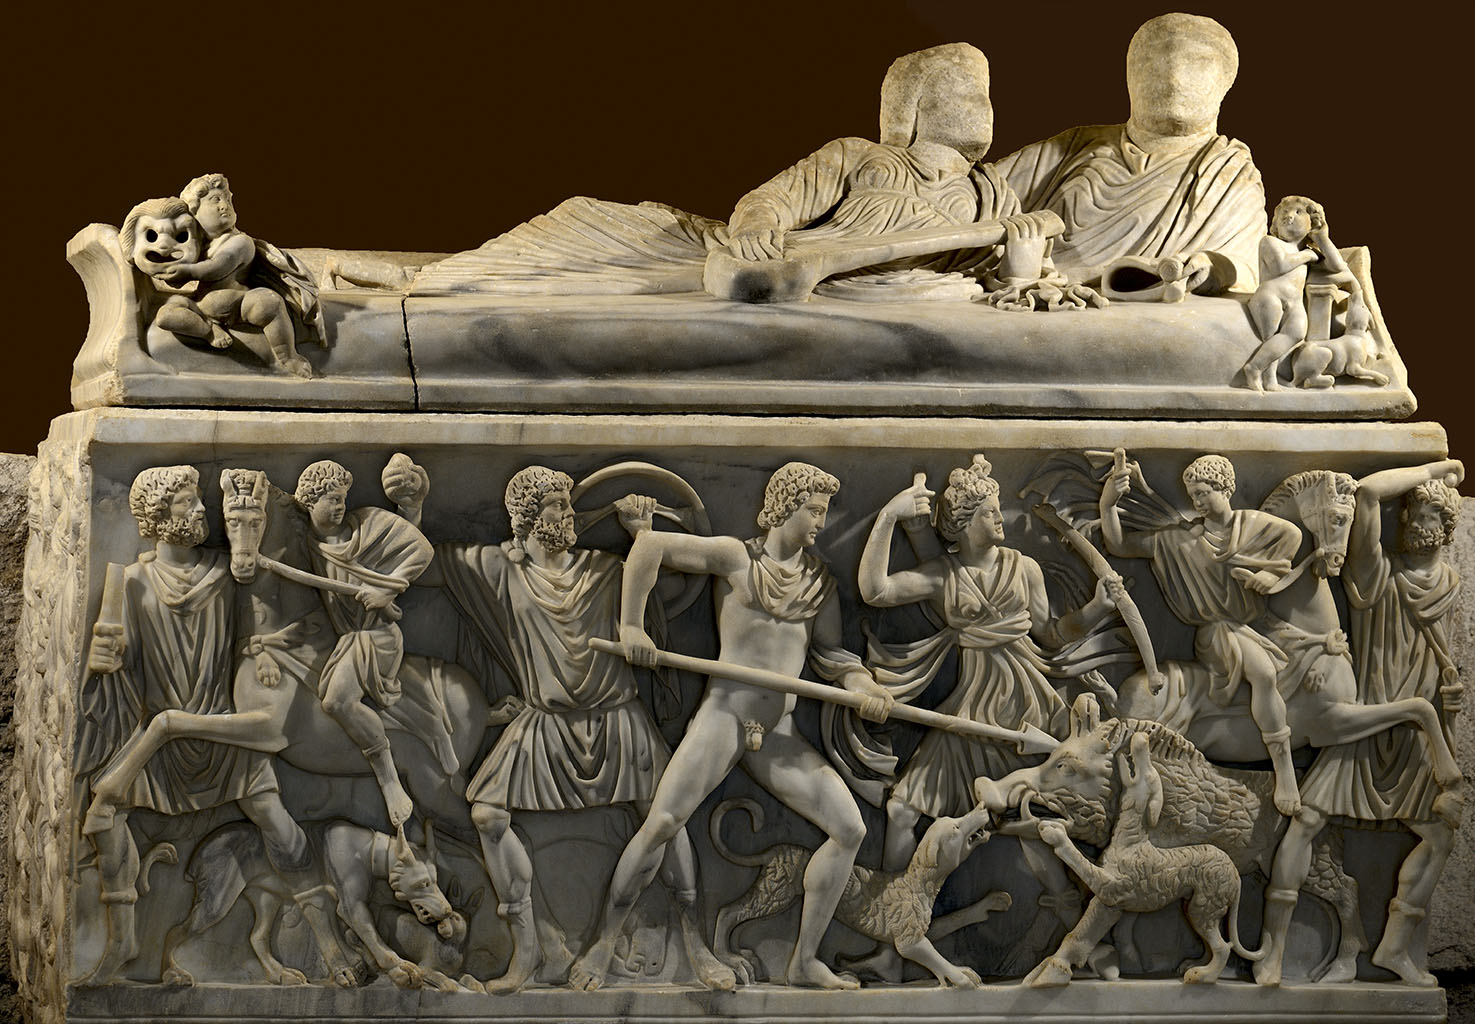 Sarcophagus with a scene of the Calydonian Hunt. Proconnesian marble. Mid-3rd cent. CE.  Inv. No. 917. Rome, Capitoline Museums, Palazzo dei Conservatori